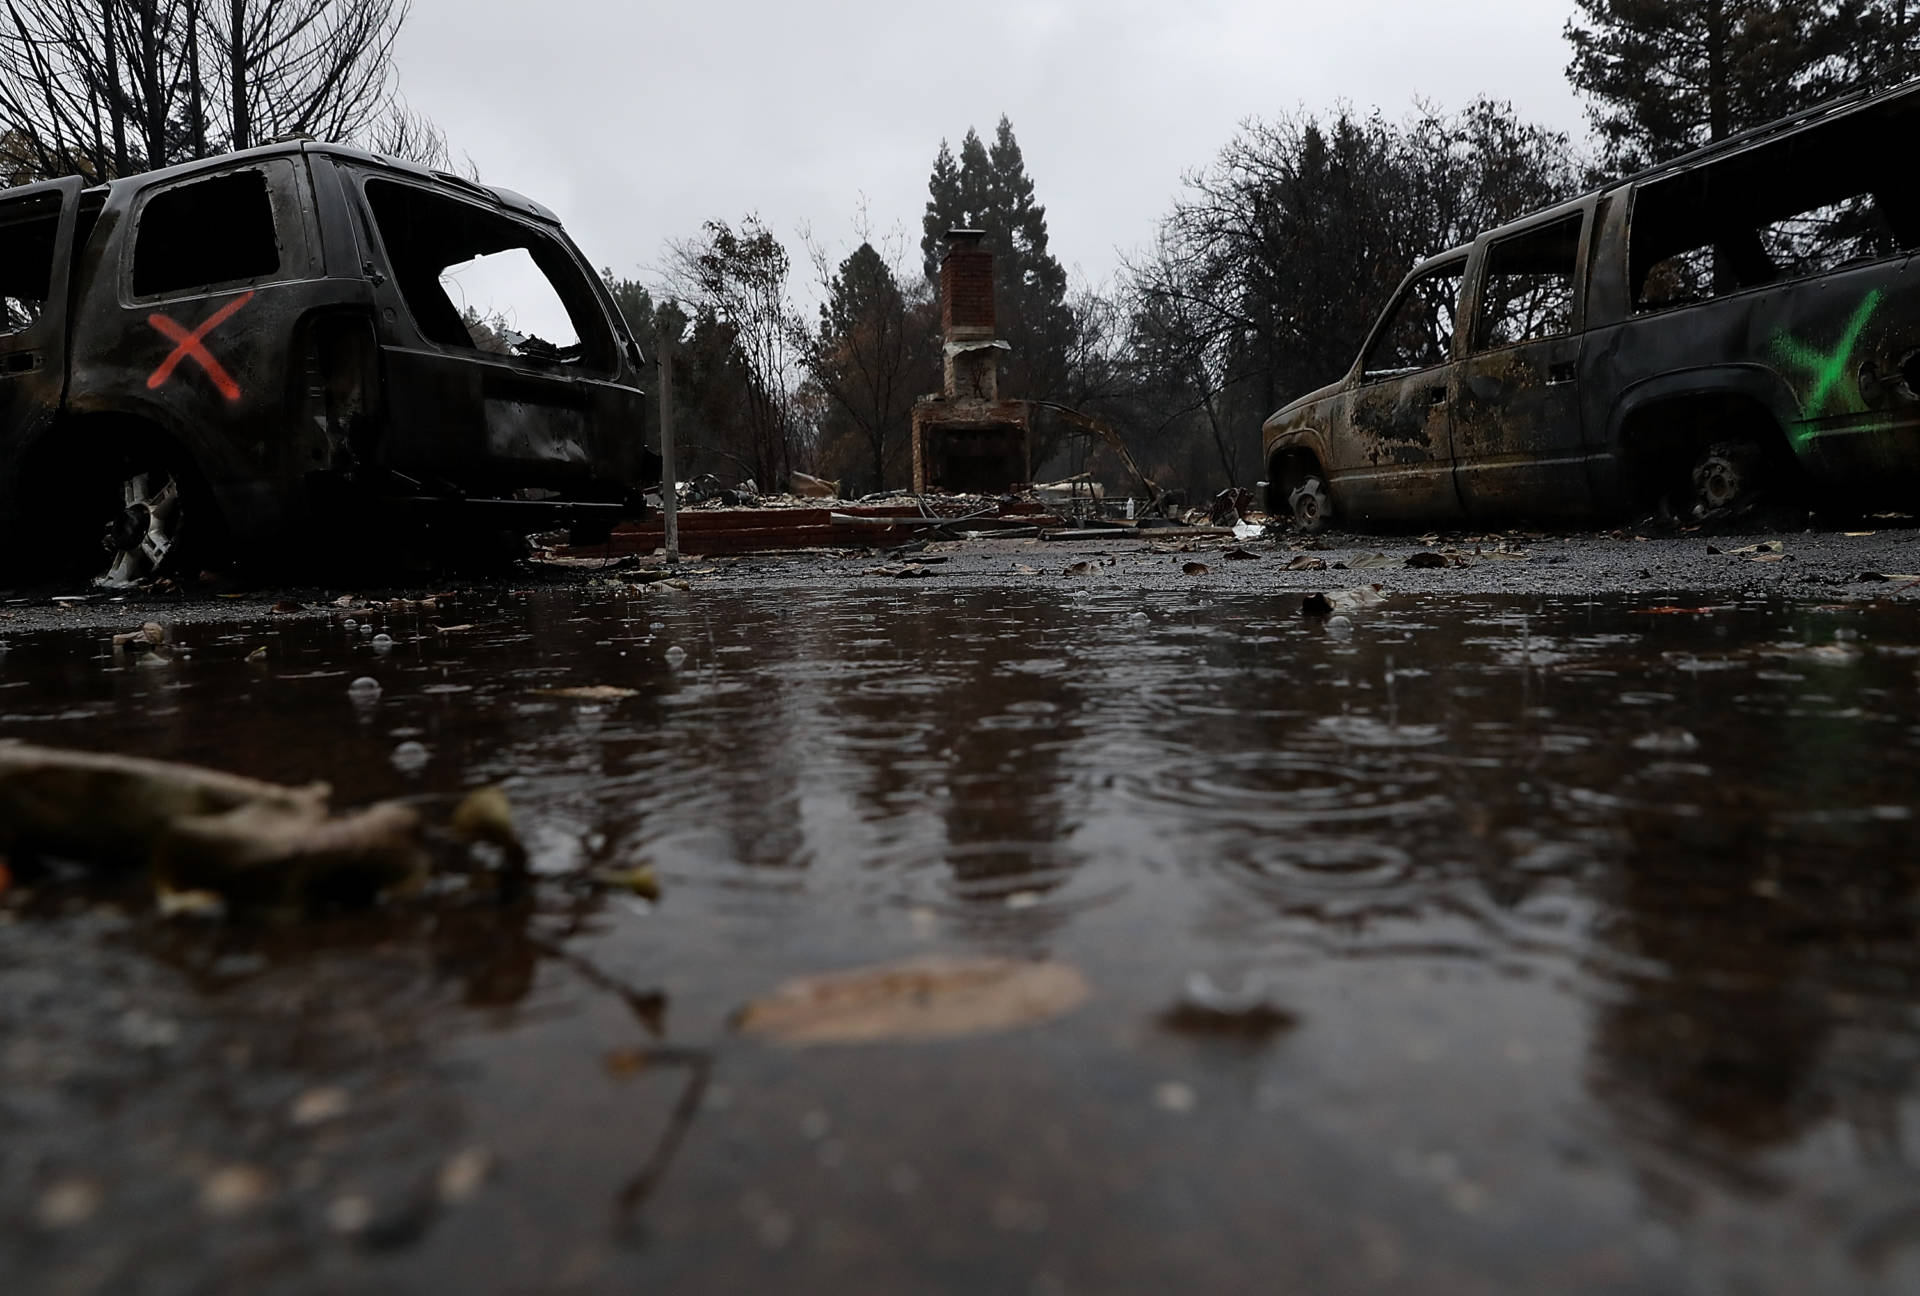 Rain falls on a home destroyed by the Camp Fire on Nov. 22, 2018 in Paradise. Justin Sullivan/Getty Images